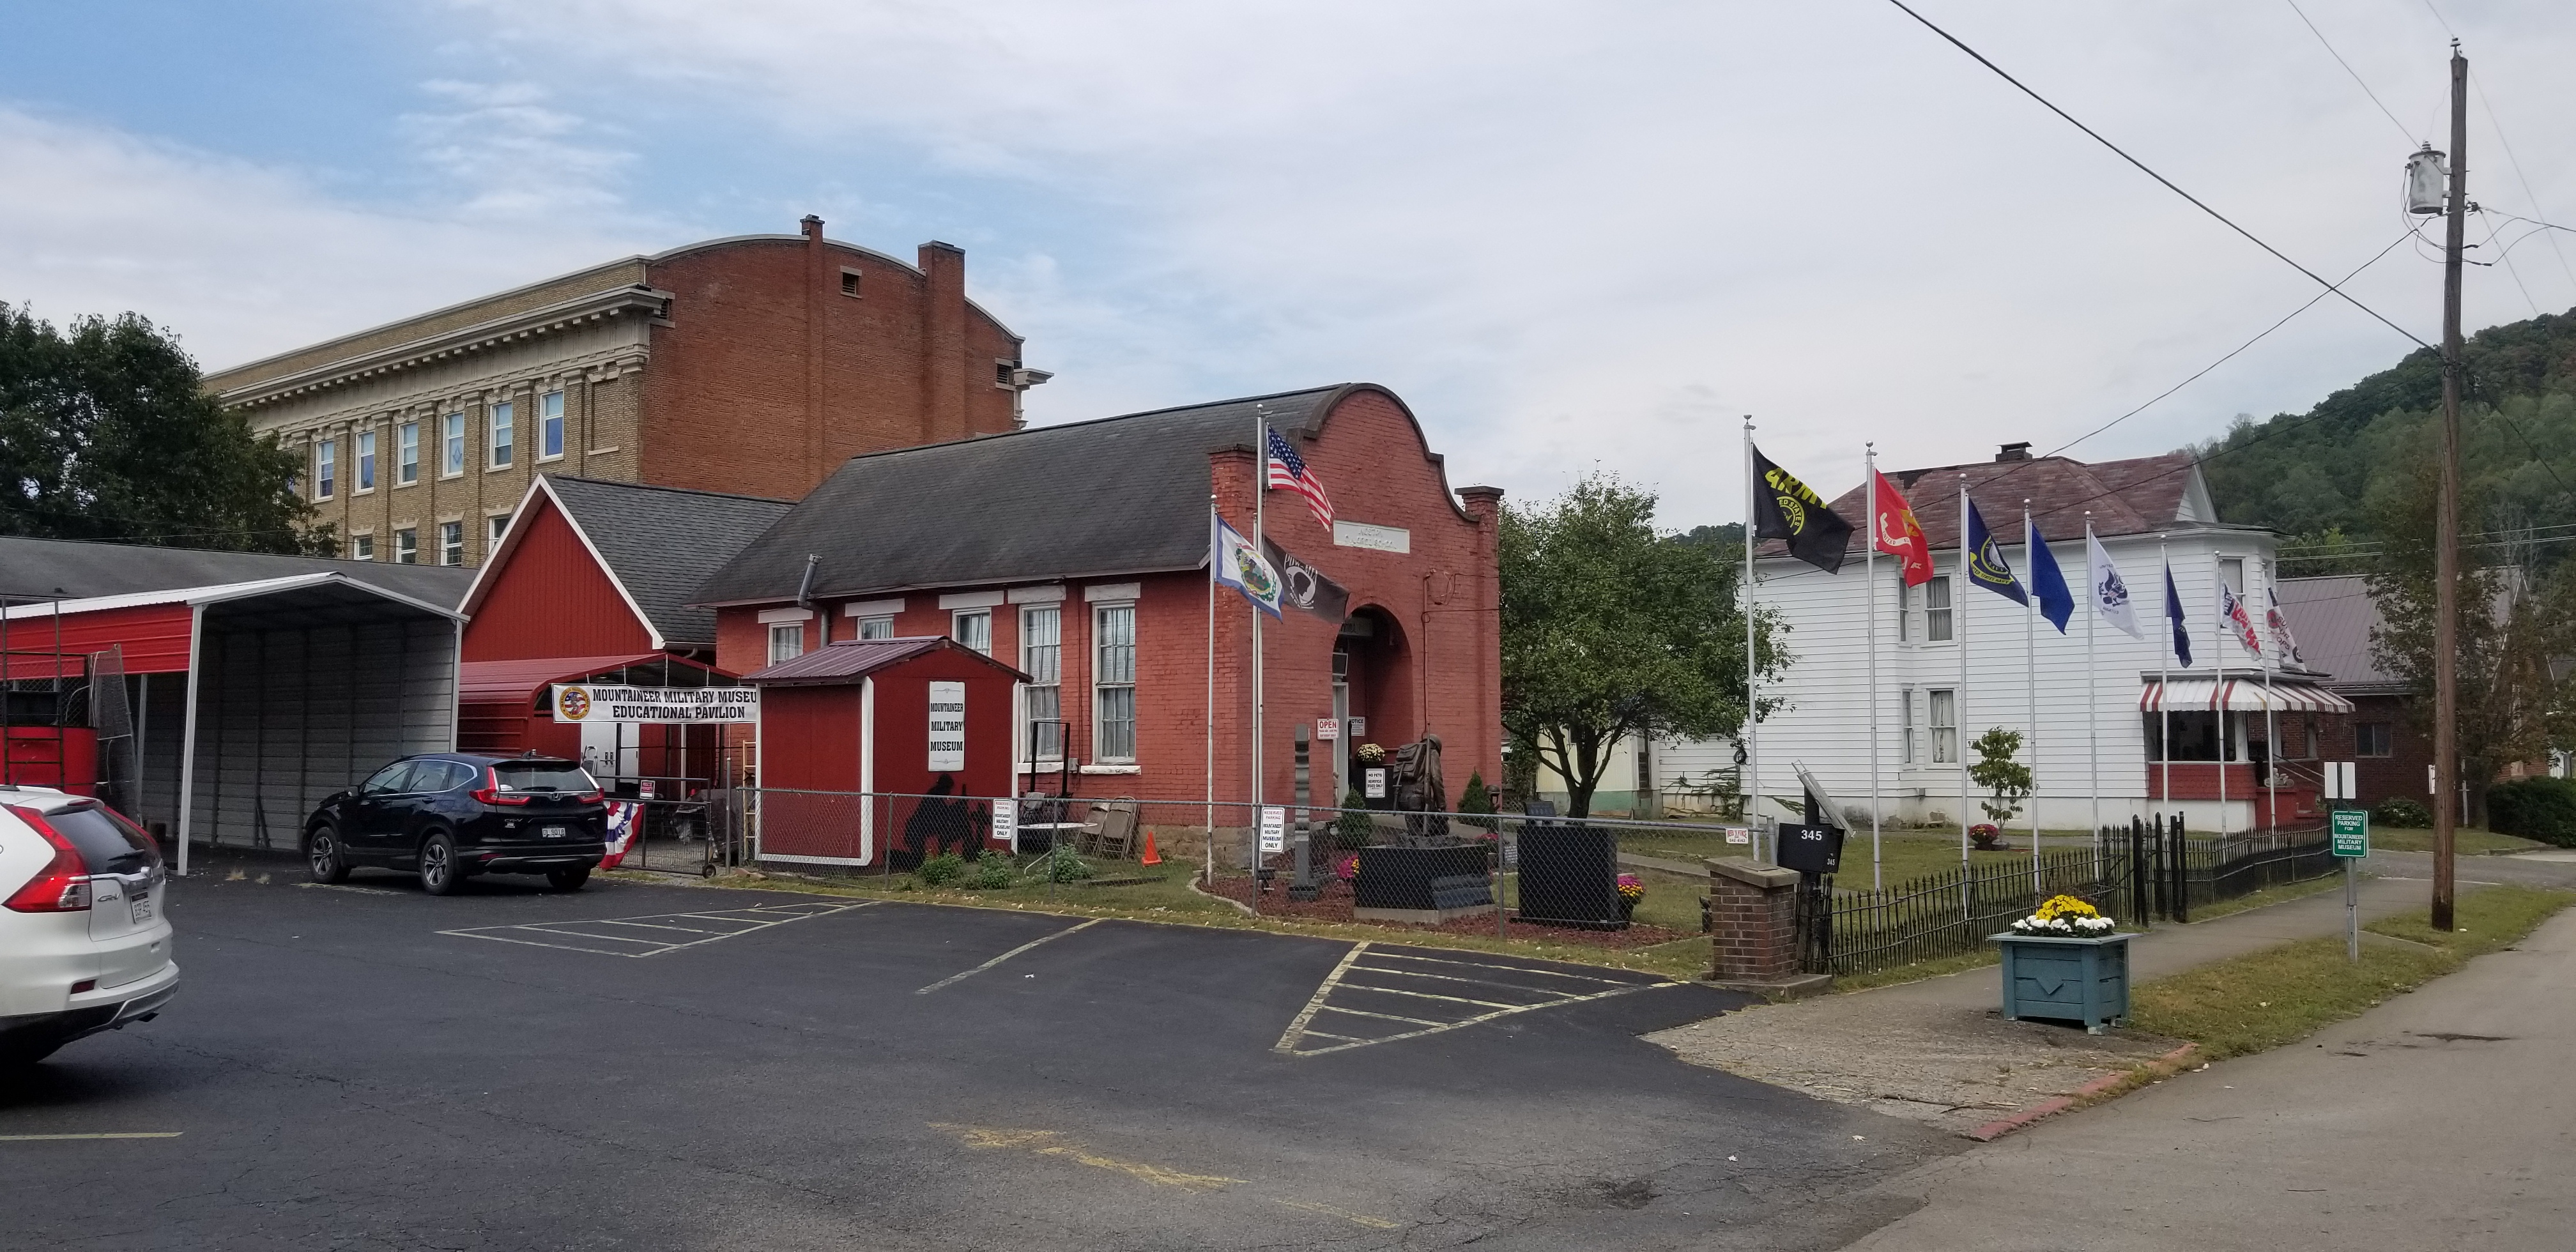 The Mountaineer Military Museum